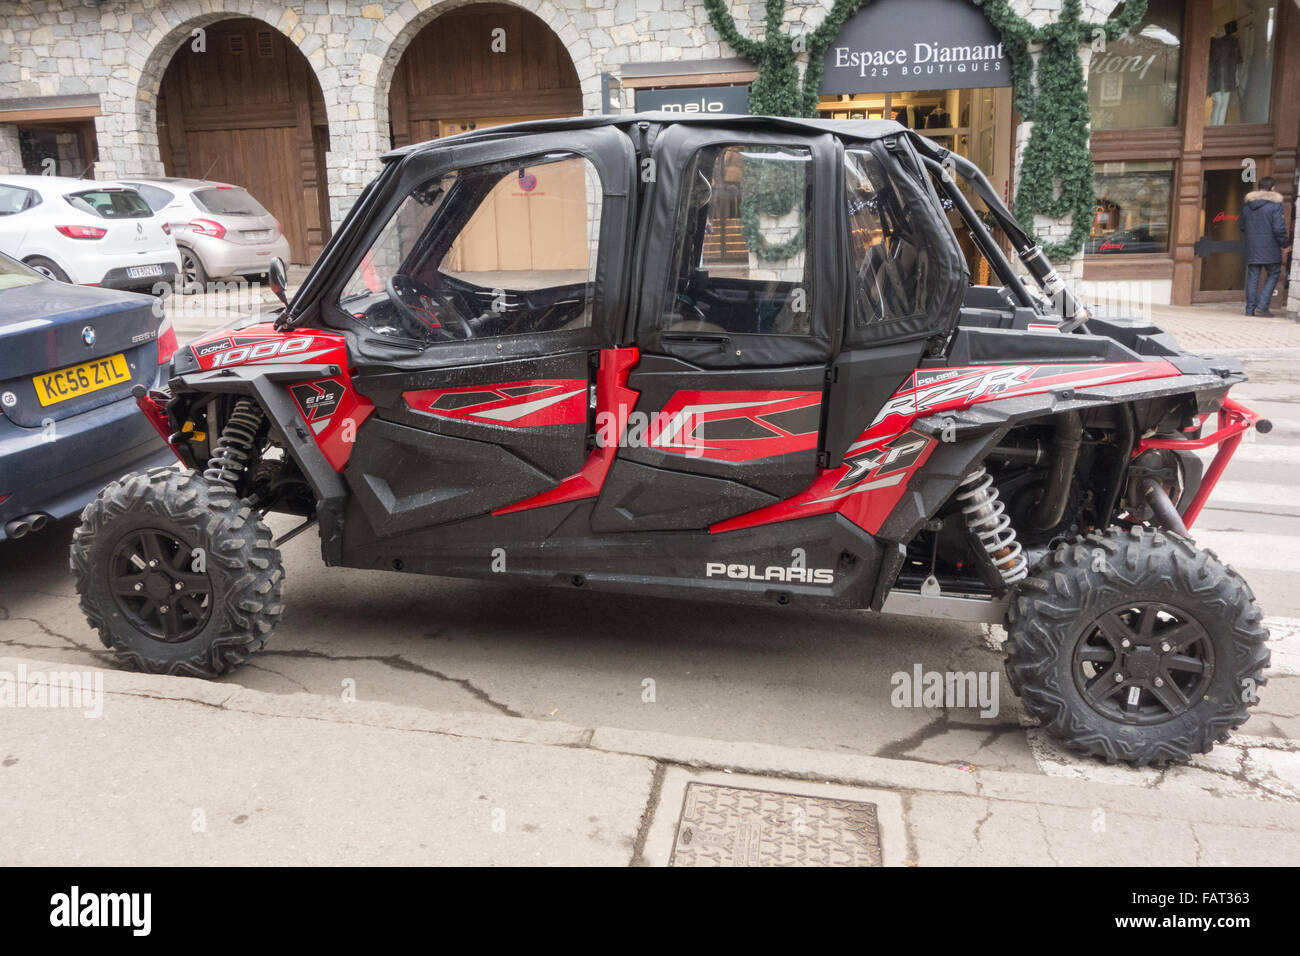 polaris 4 seater high performance off road vehicle, Courchaval 1850, France - Stock Image